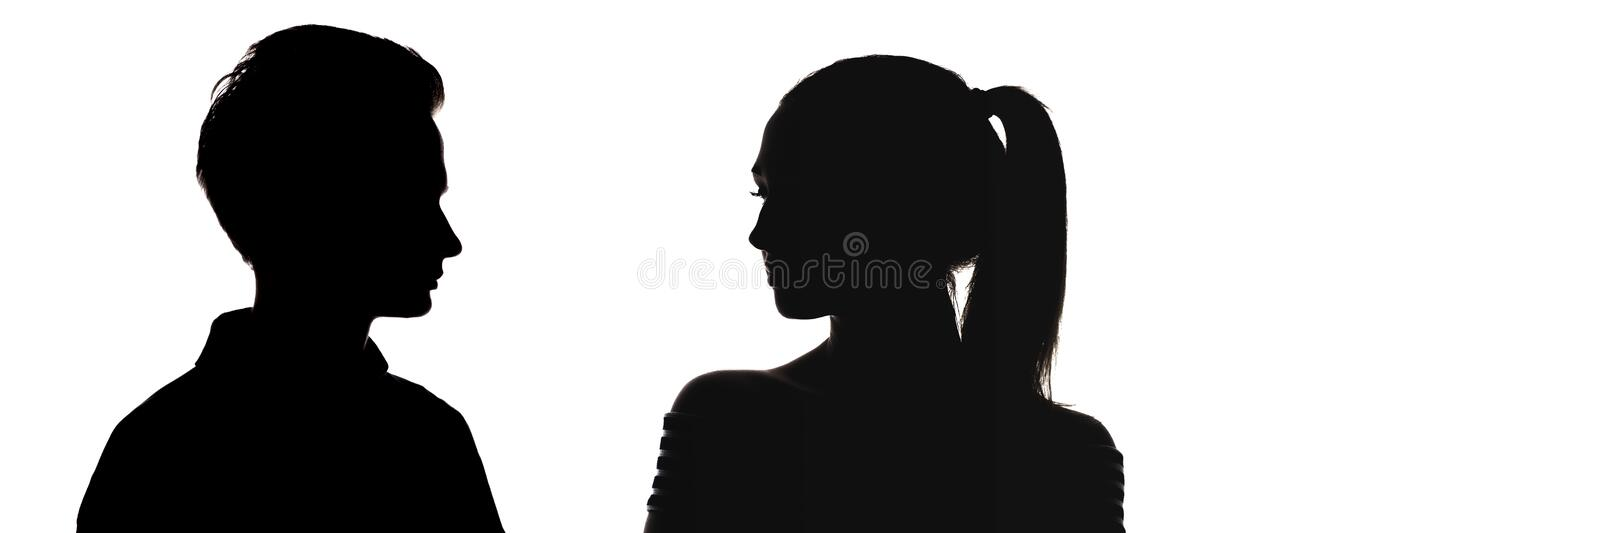 Silhouette head profile of guy and a girl looking at each other, faces of serious teenagers, comparison of genders, stock image